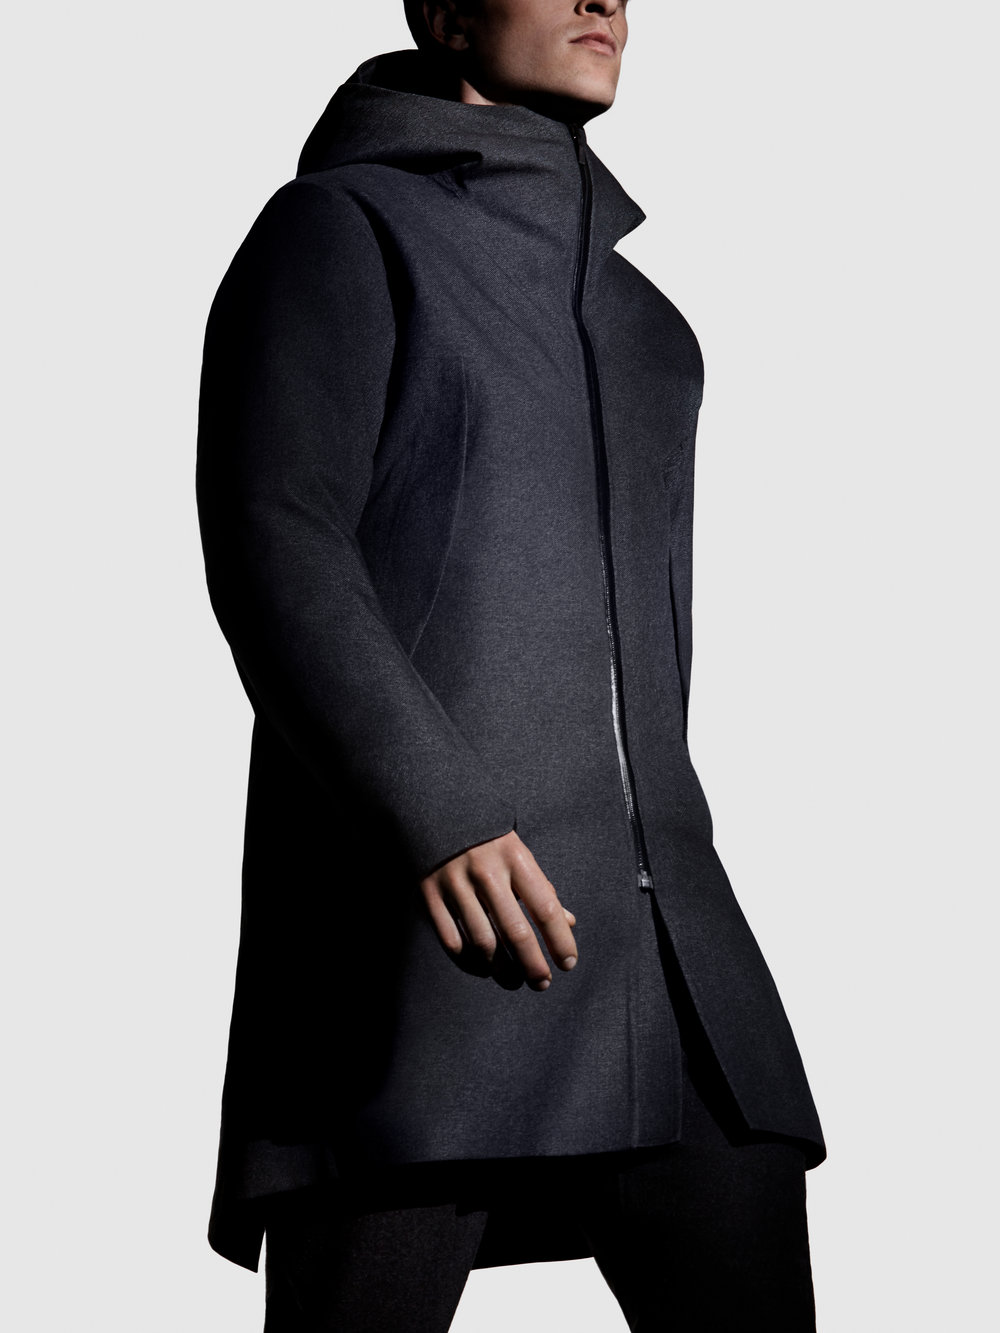 Arcteryx-Veilance-FW17-On-Model-Imagery-Monitor-Down-Coat-SMU-Portrait-RGB.jpg